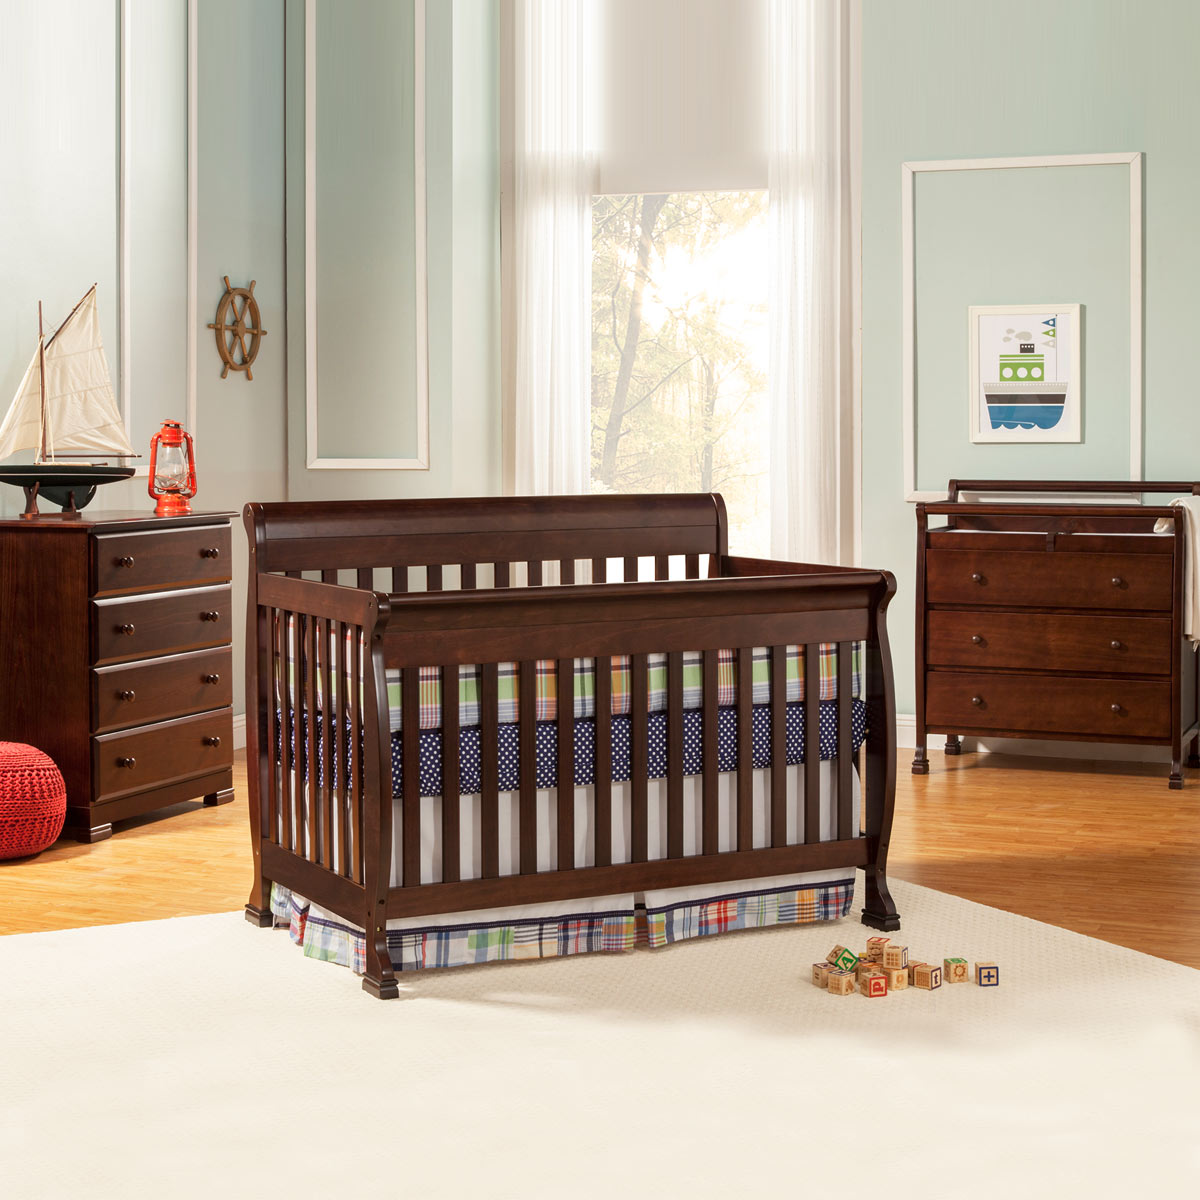 Da Vinci 3 Piece Nursery Set Kalani Convertible Crib Drawer Changer 4 Dresser Cherry Free Shipping Davinci